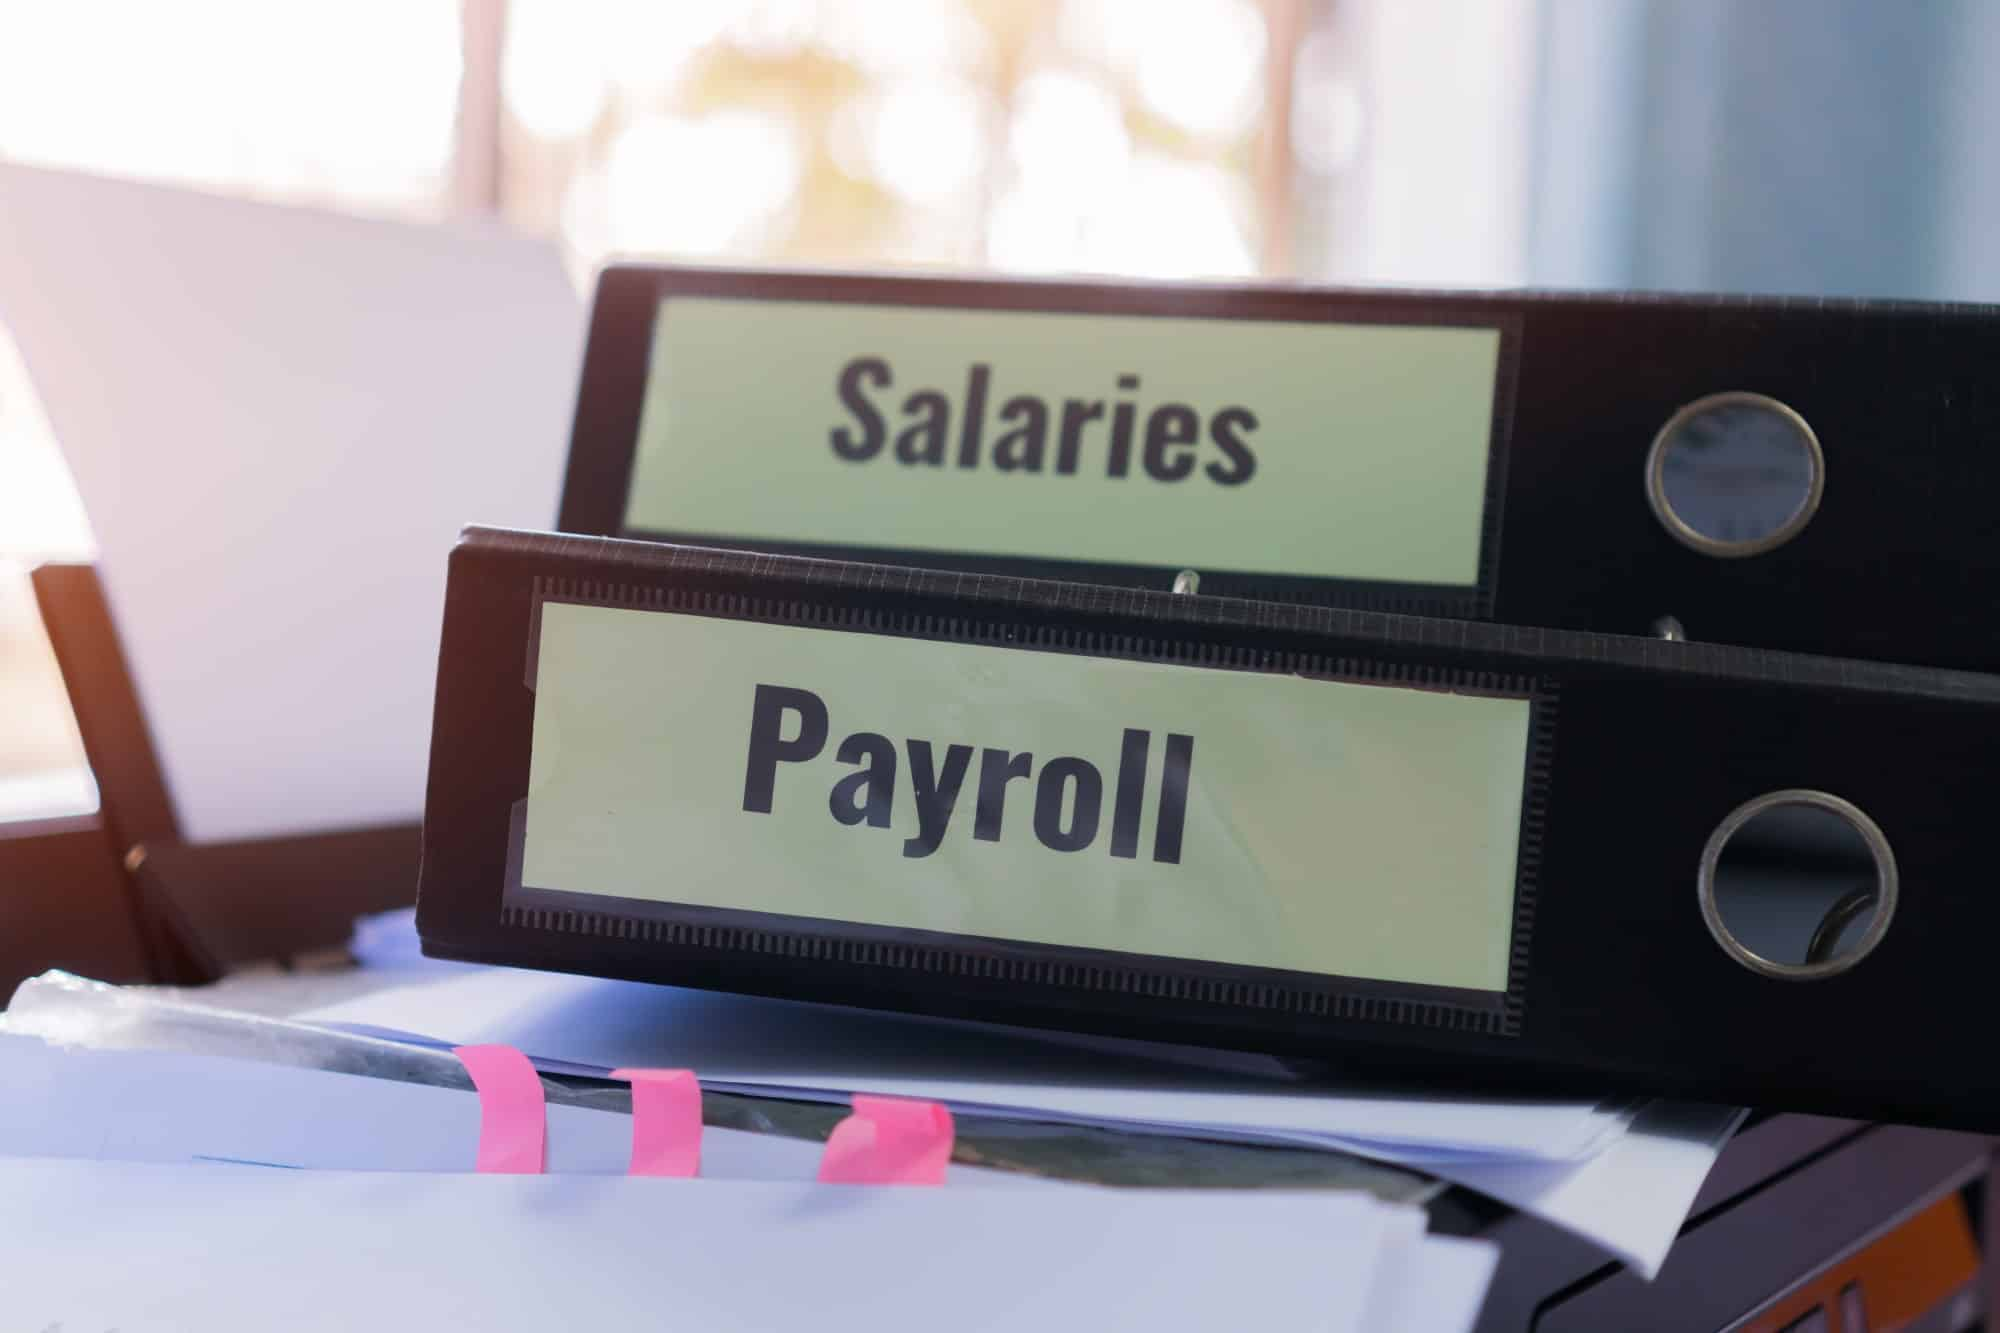 Payroll and salary administration in Holland - the Netherlands